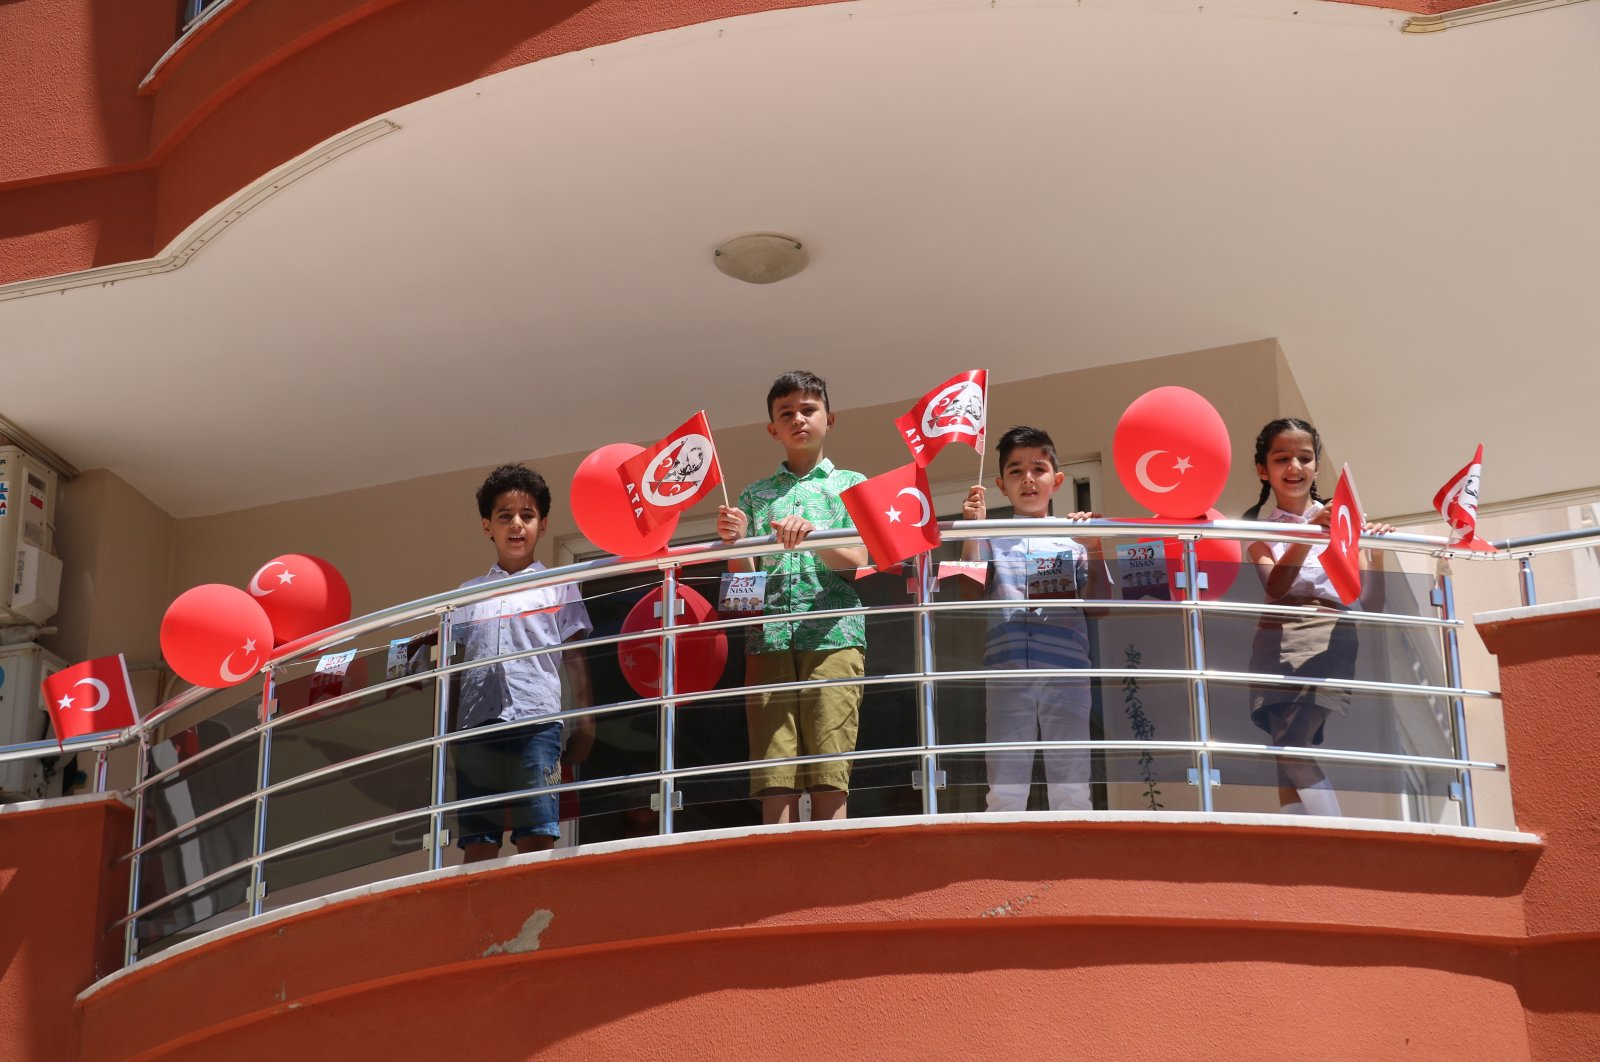 Children confined to home due to pandemic, wave flags and balloons at the balcony of their home, in Alanya district, in Antalya, southern Turkey, Apr. 23, 2021. (İHA PHOTO)